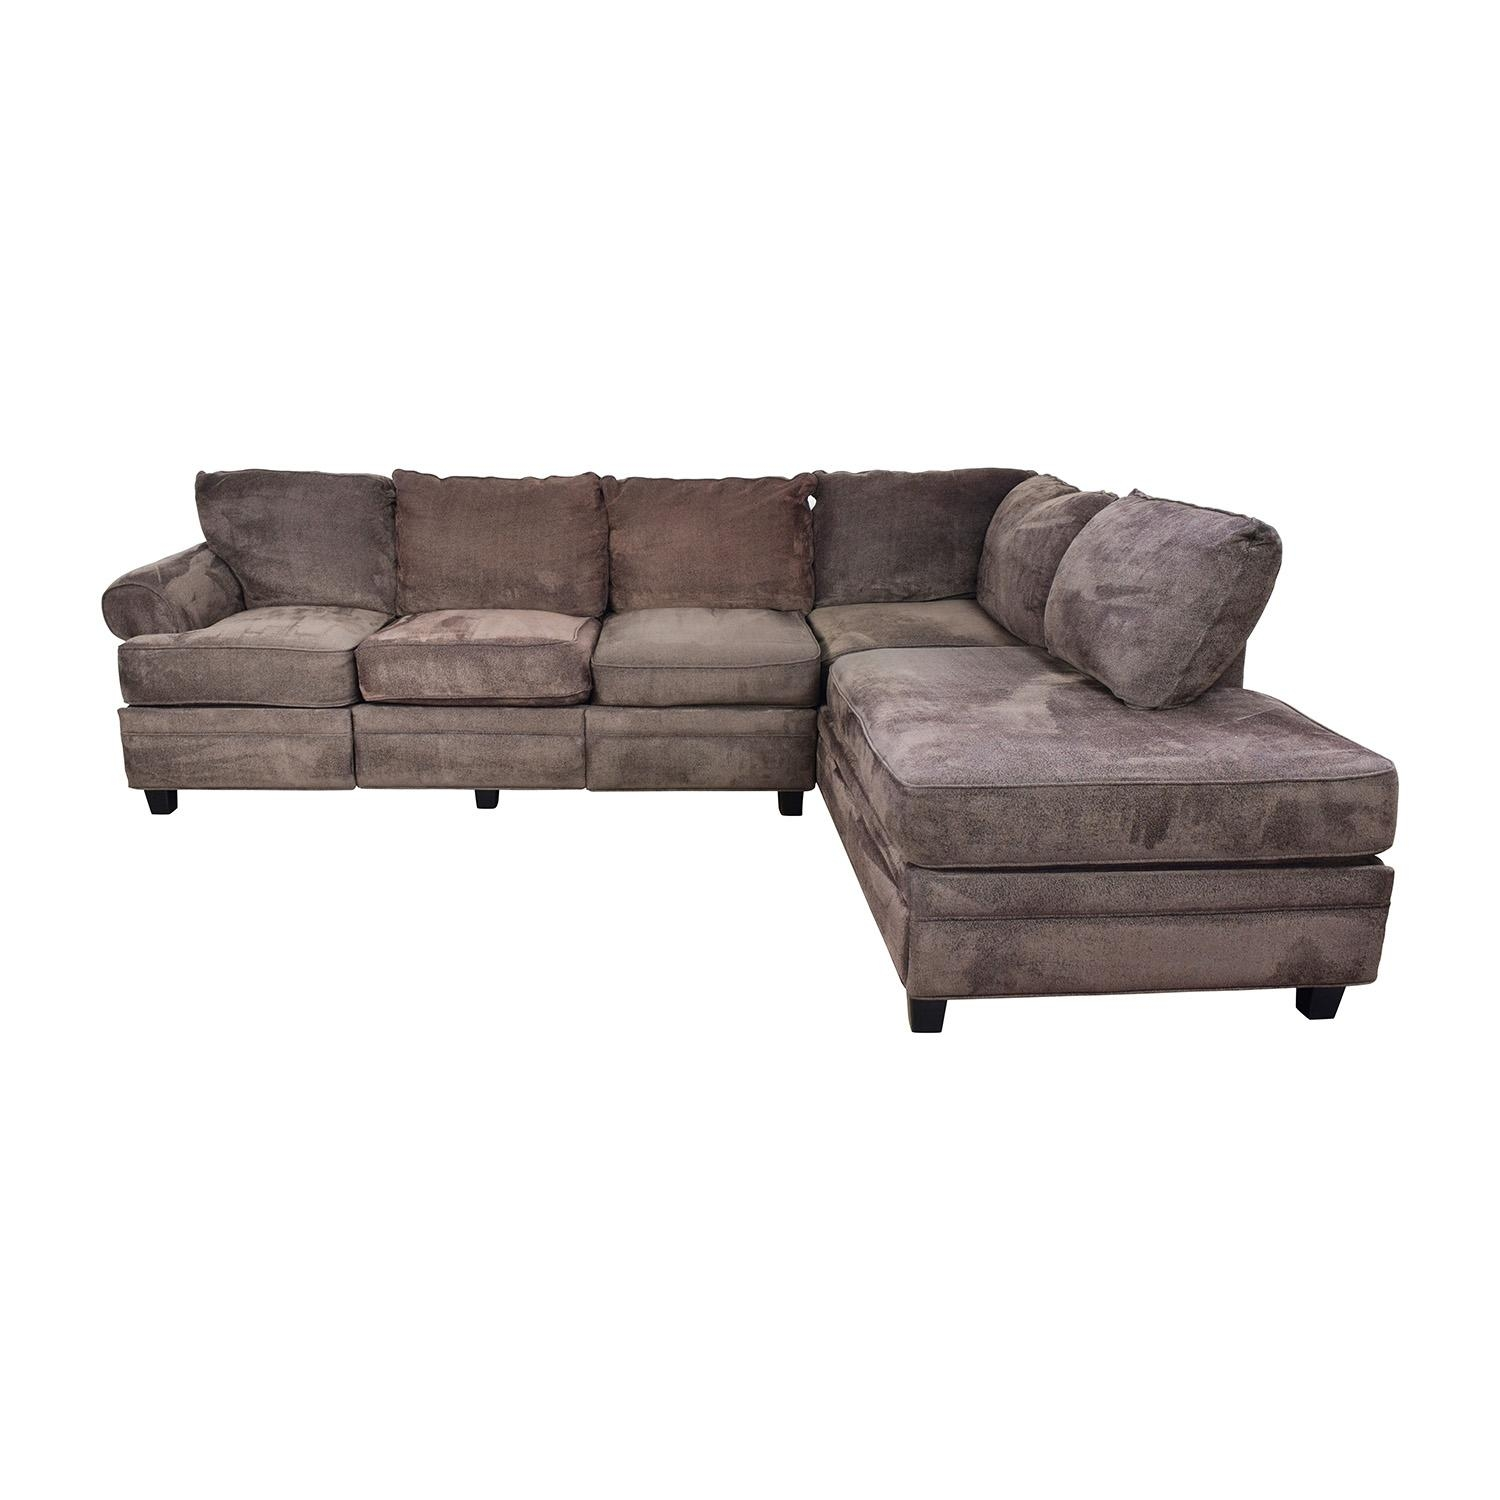 55% Off – Bob's Furniture Bob's Furniture Brown Sectional With Pertaining To Used Sectionals (Image 5 of 20)